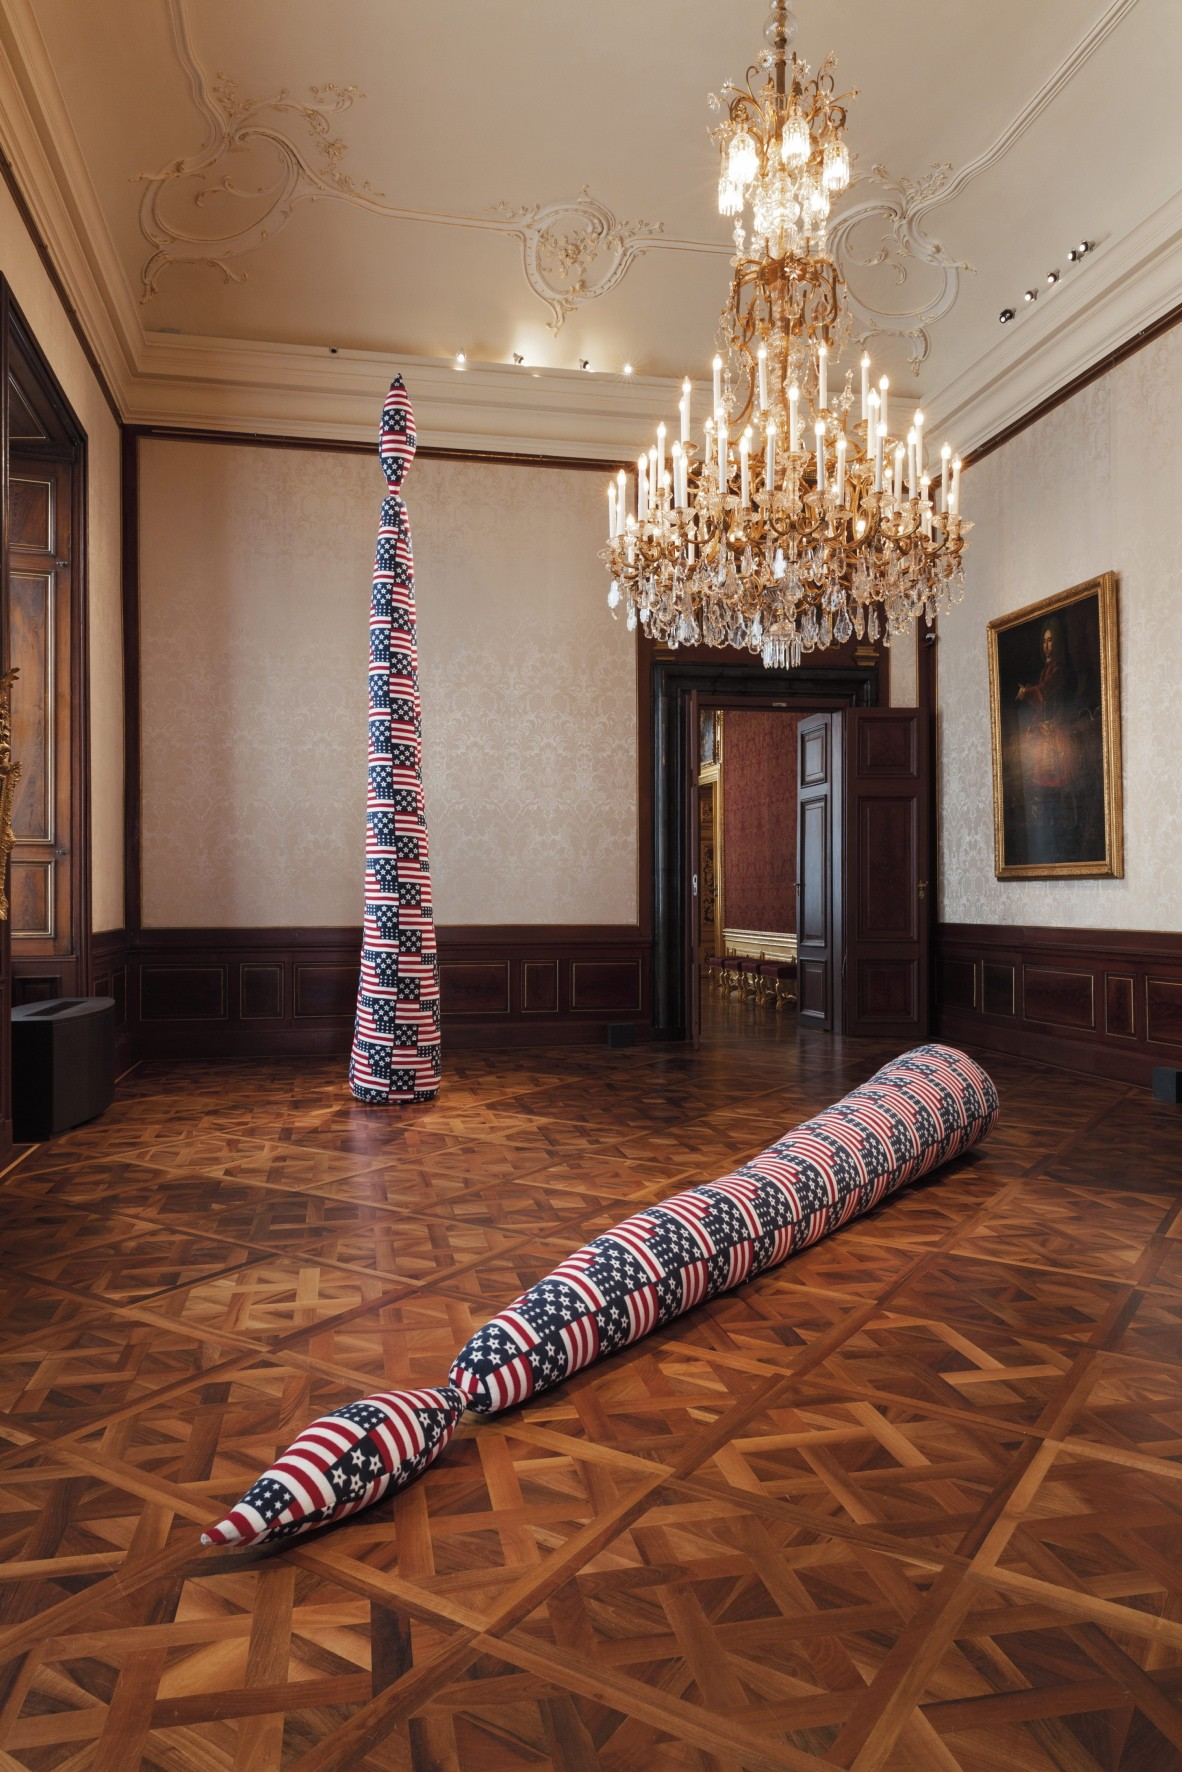 Image: Exhibition view, Sterling Ruby, 2016, Winterpalais. © Belvedere, Vienna